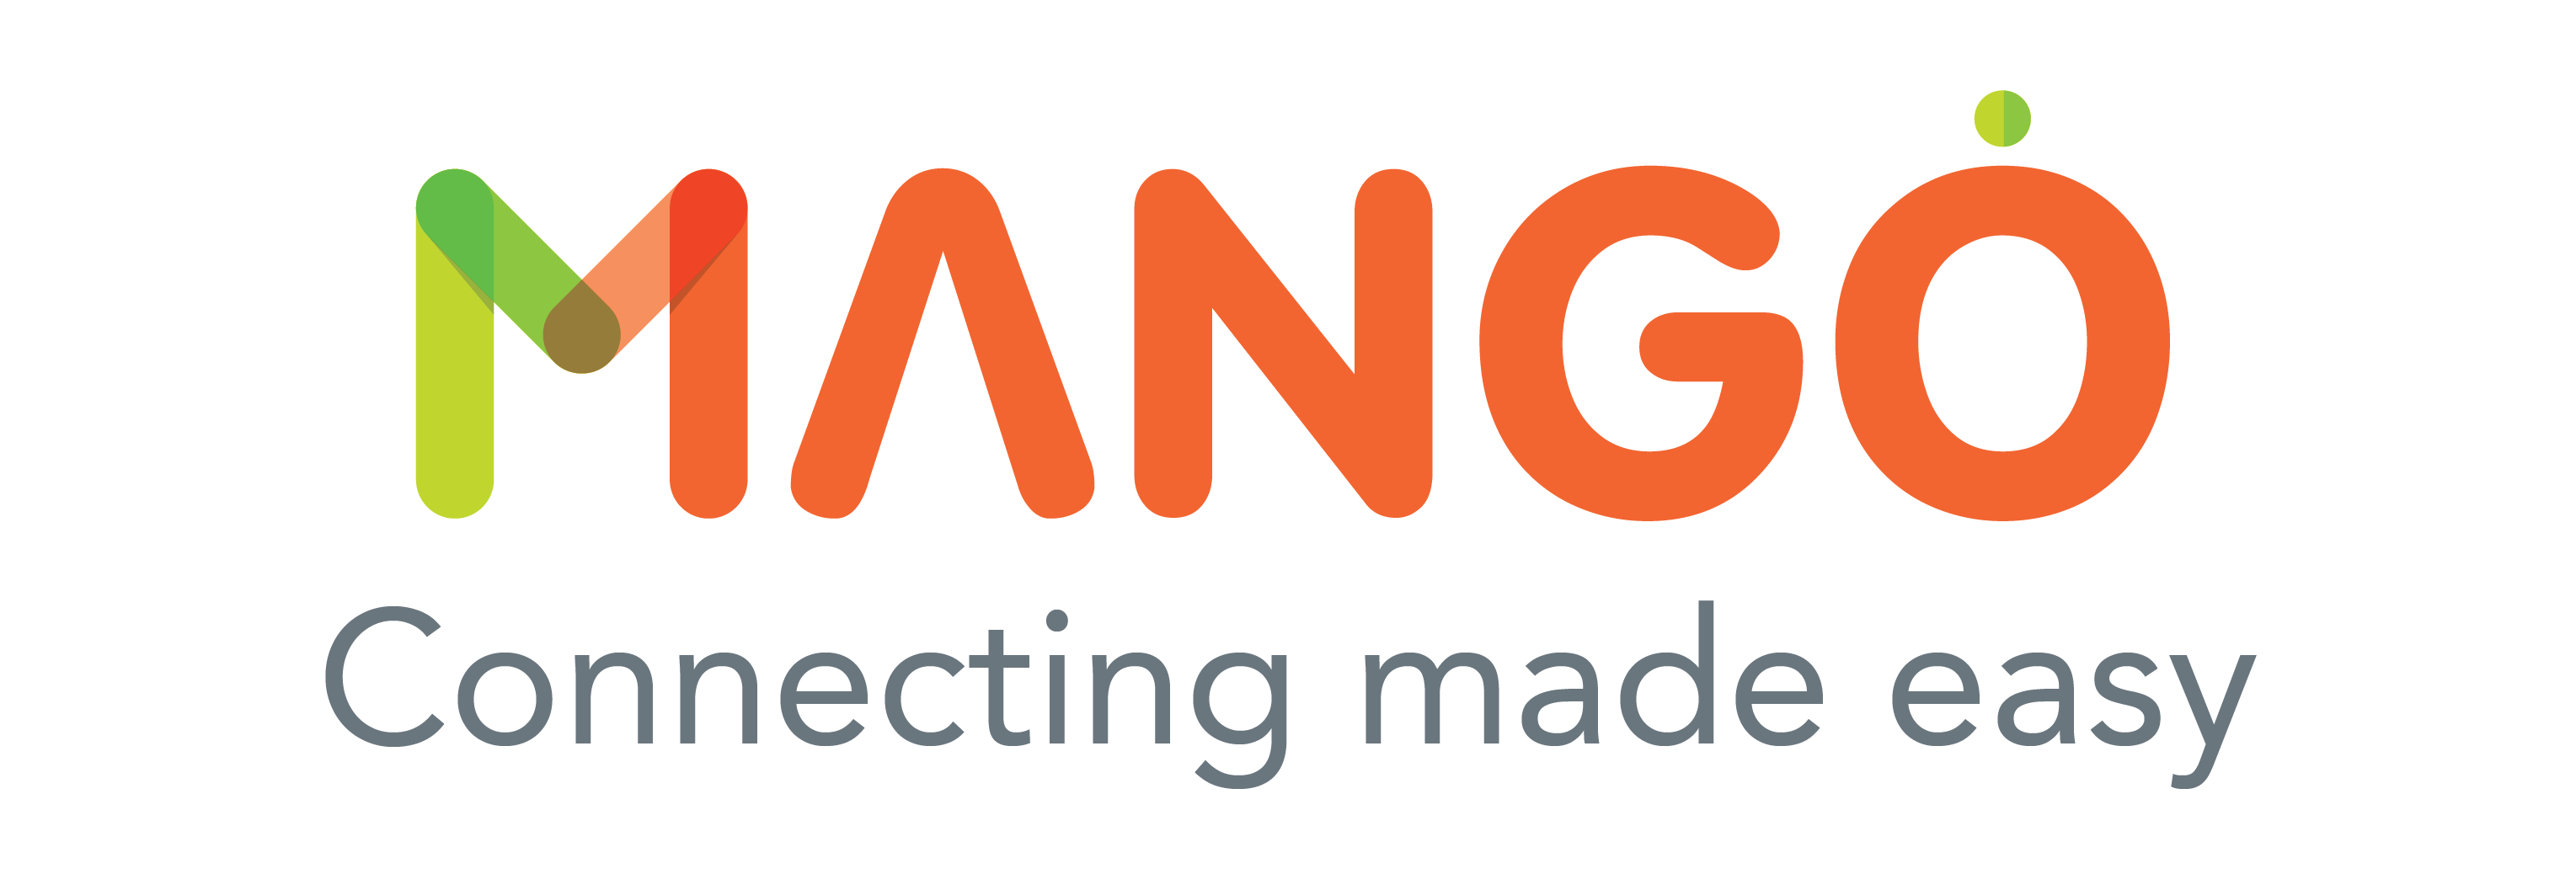 936606b90b7 MANGO Networking